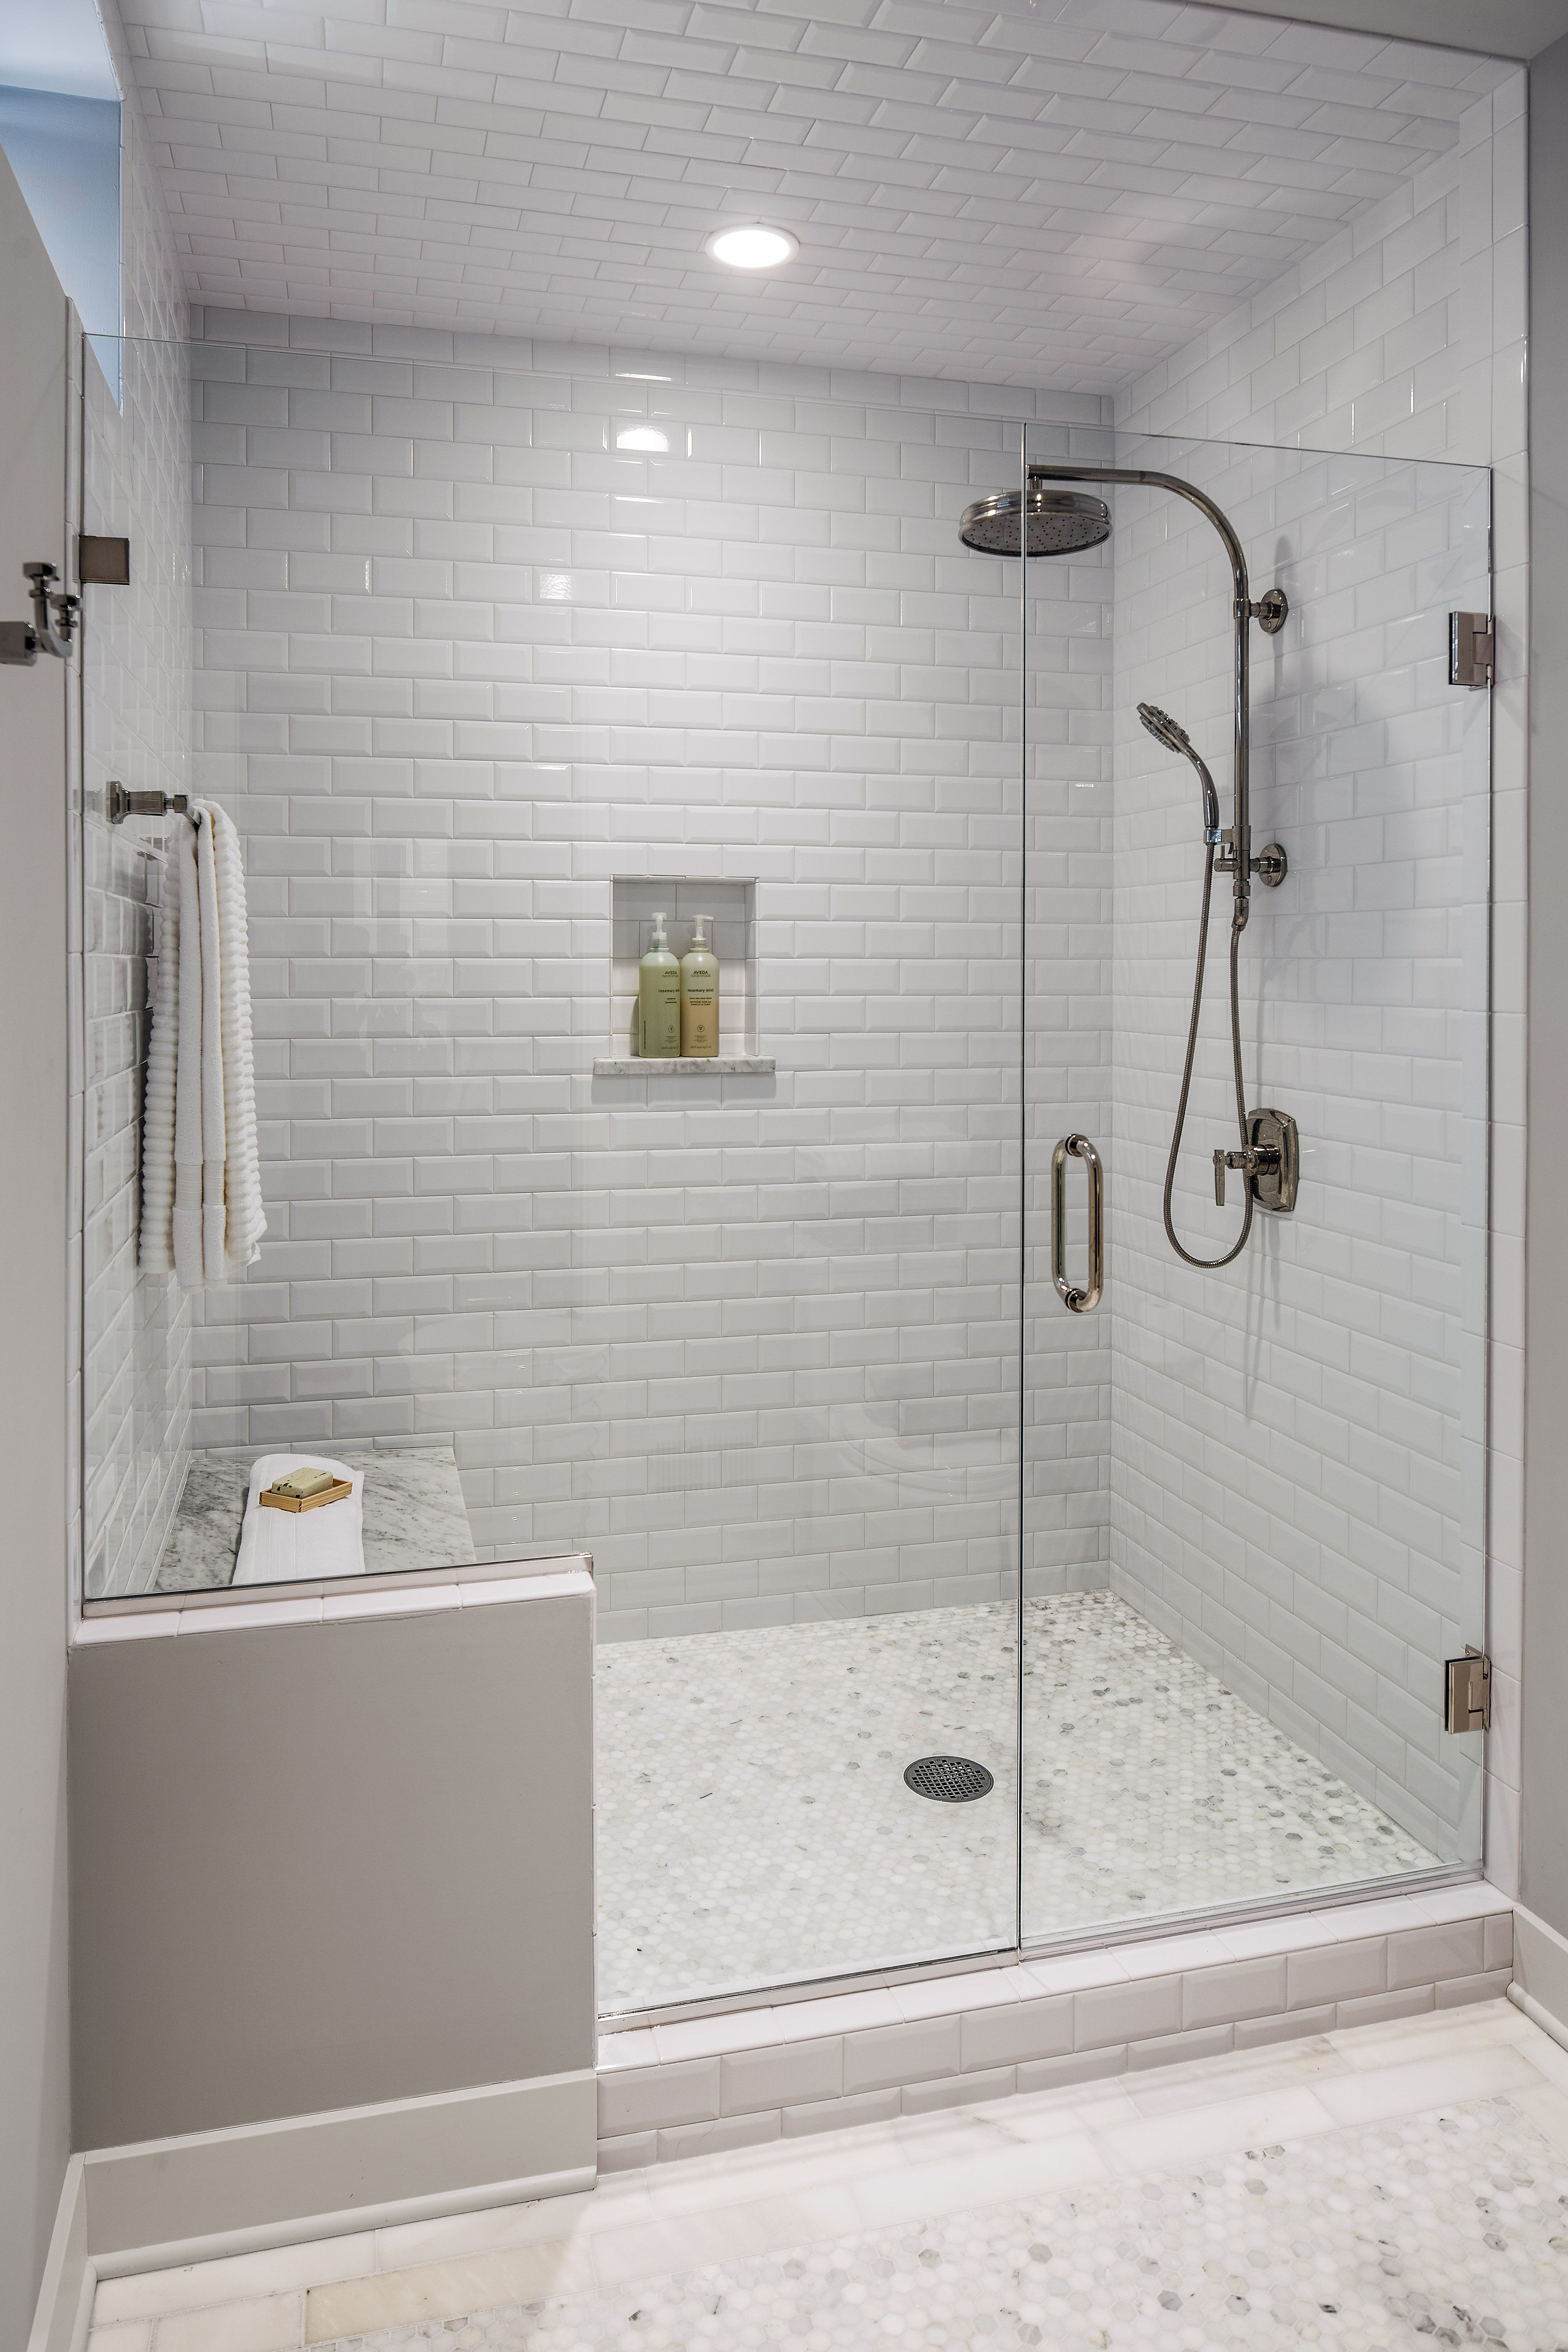 The guest bath had a shower area that was dated and